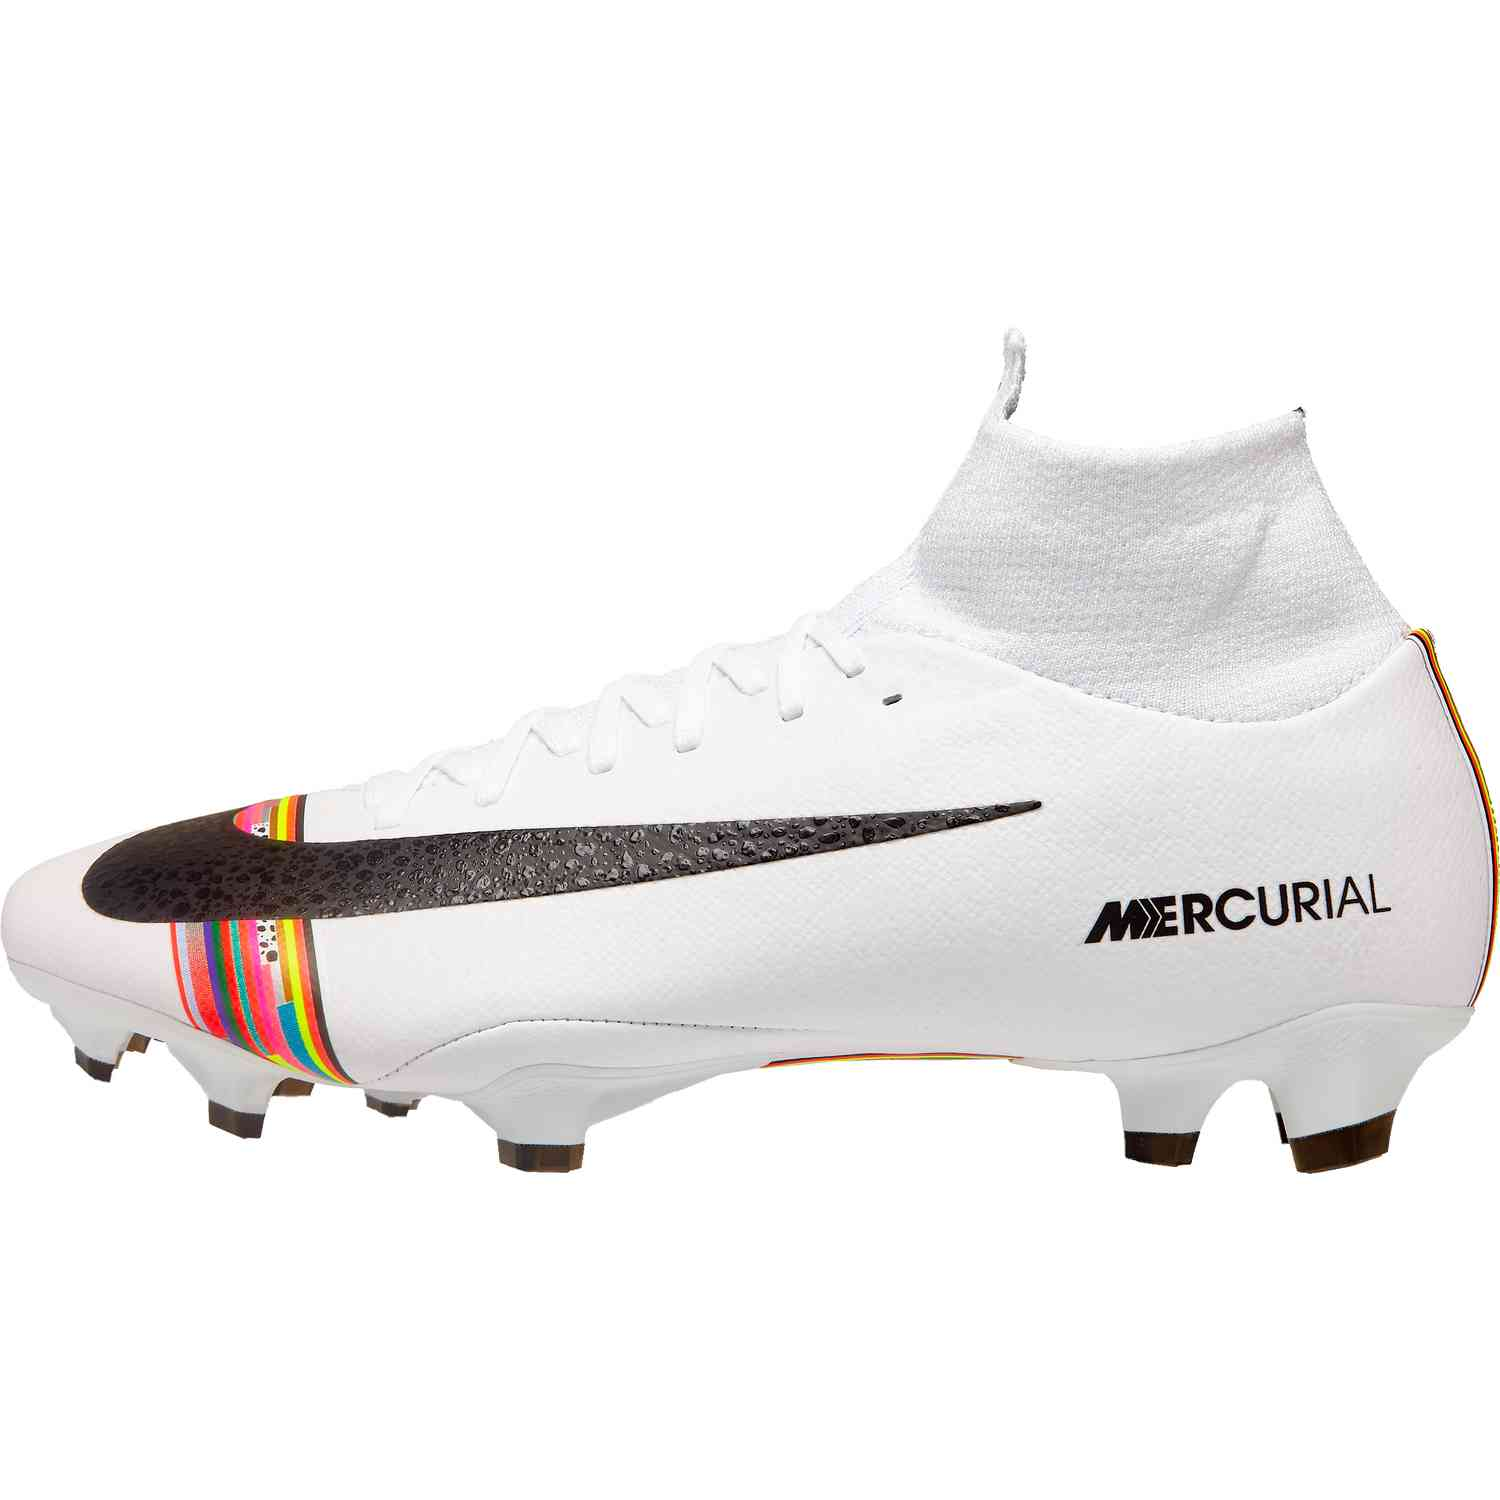 buy popular 0e2a1 c6b2c Nike Mercurial Superfly 6 Pro FG – Level Up